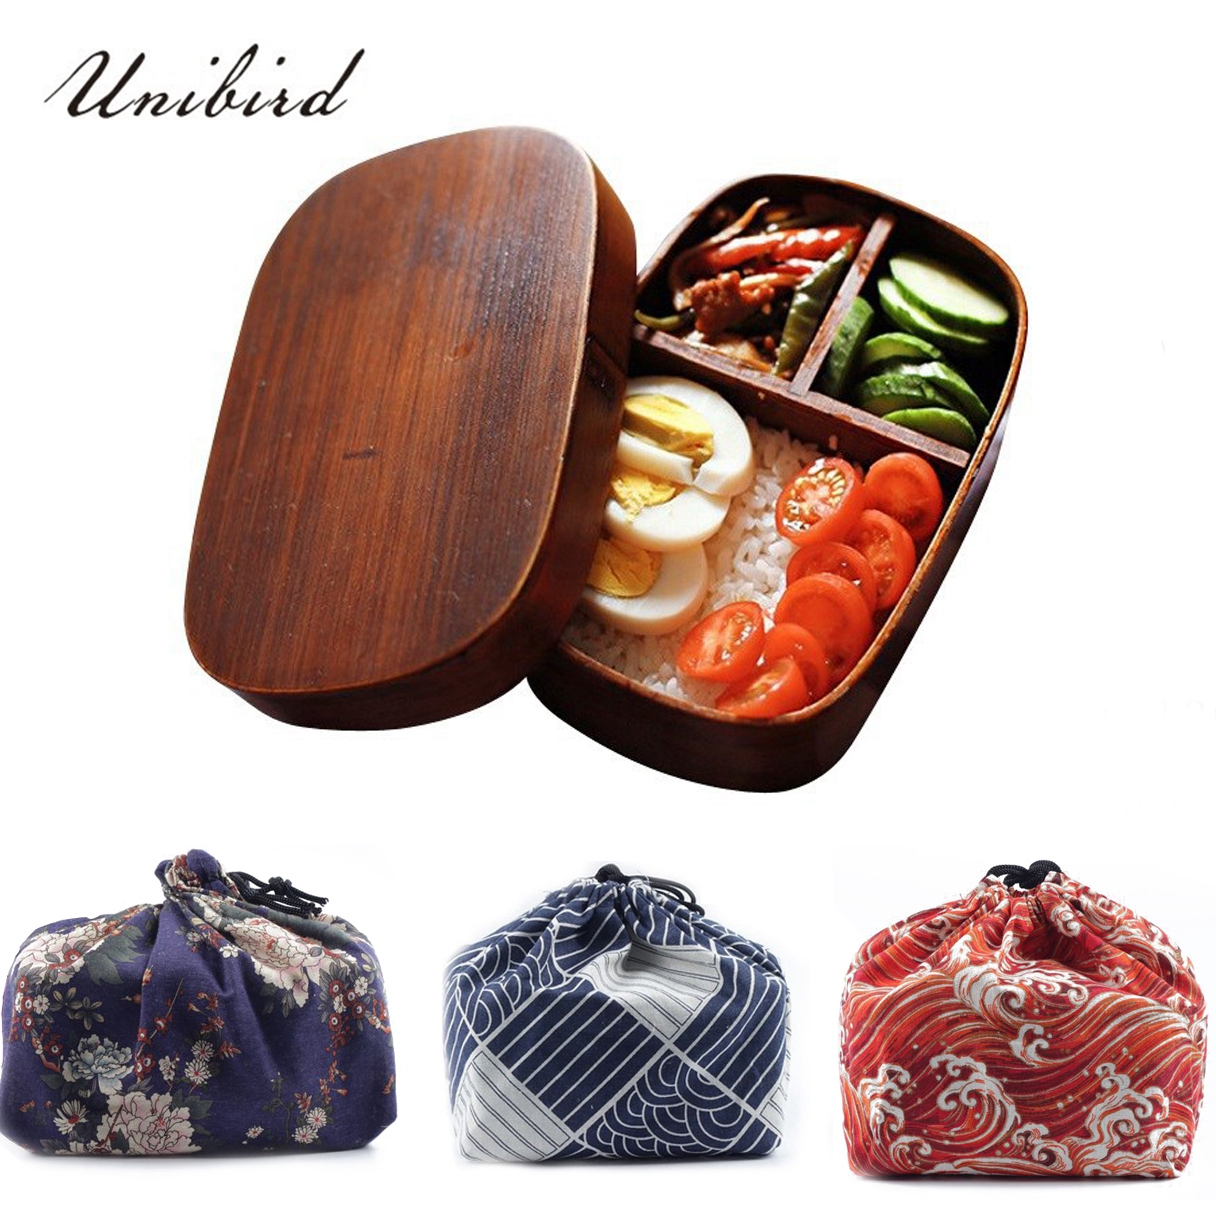 Unibird Japanese Square Wooden Compartment Lunch Box with Bag Spoon Chopsticks Sushi Bento Box Food Container for Kids Set